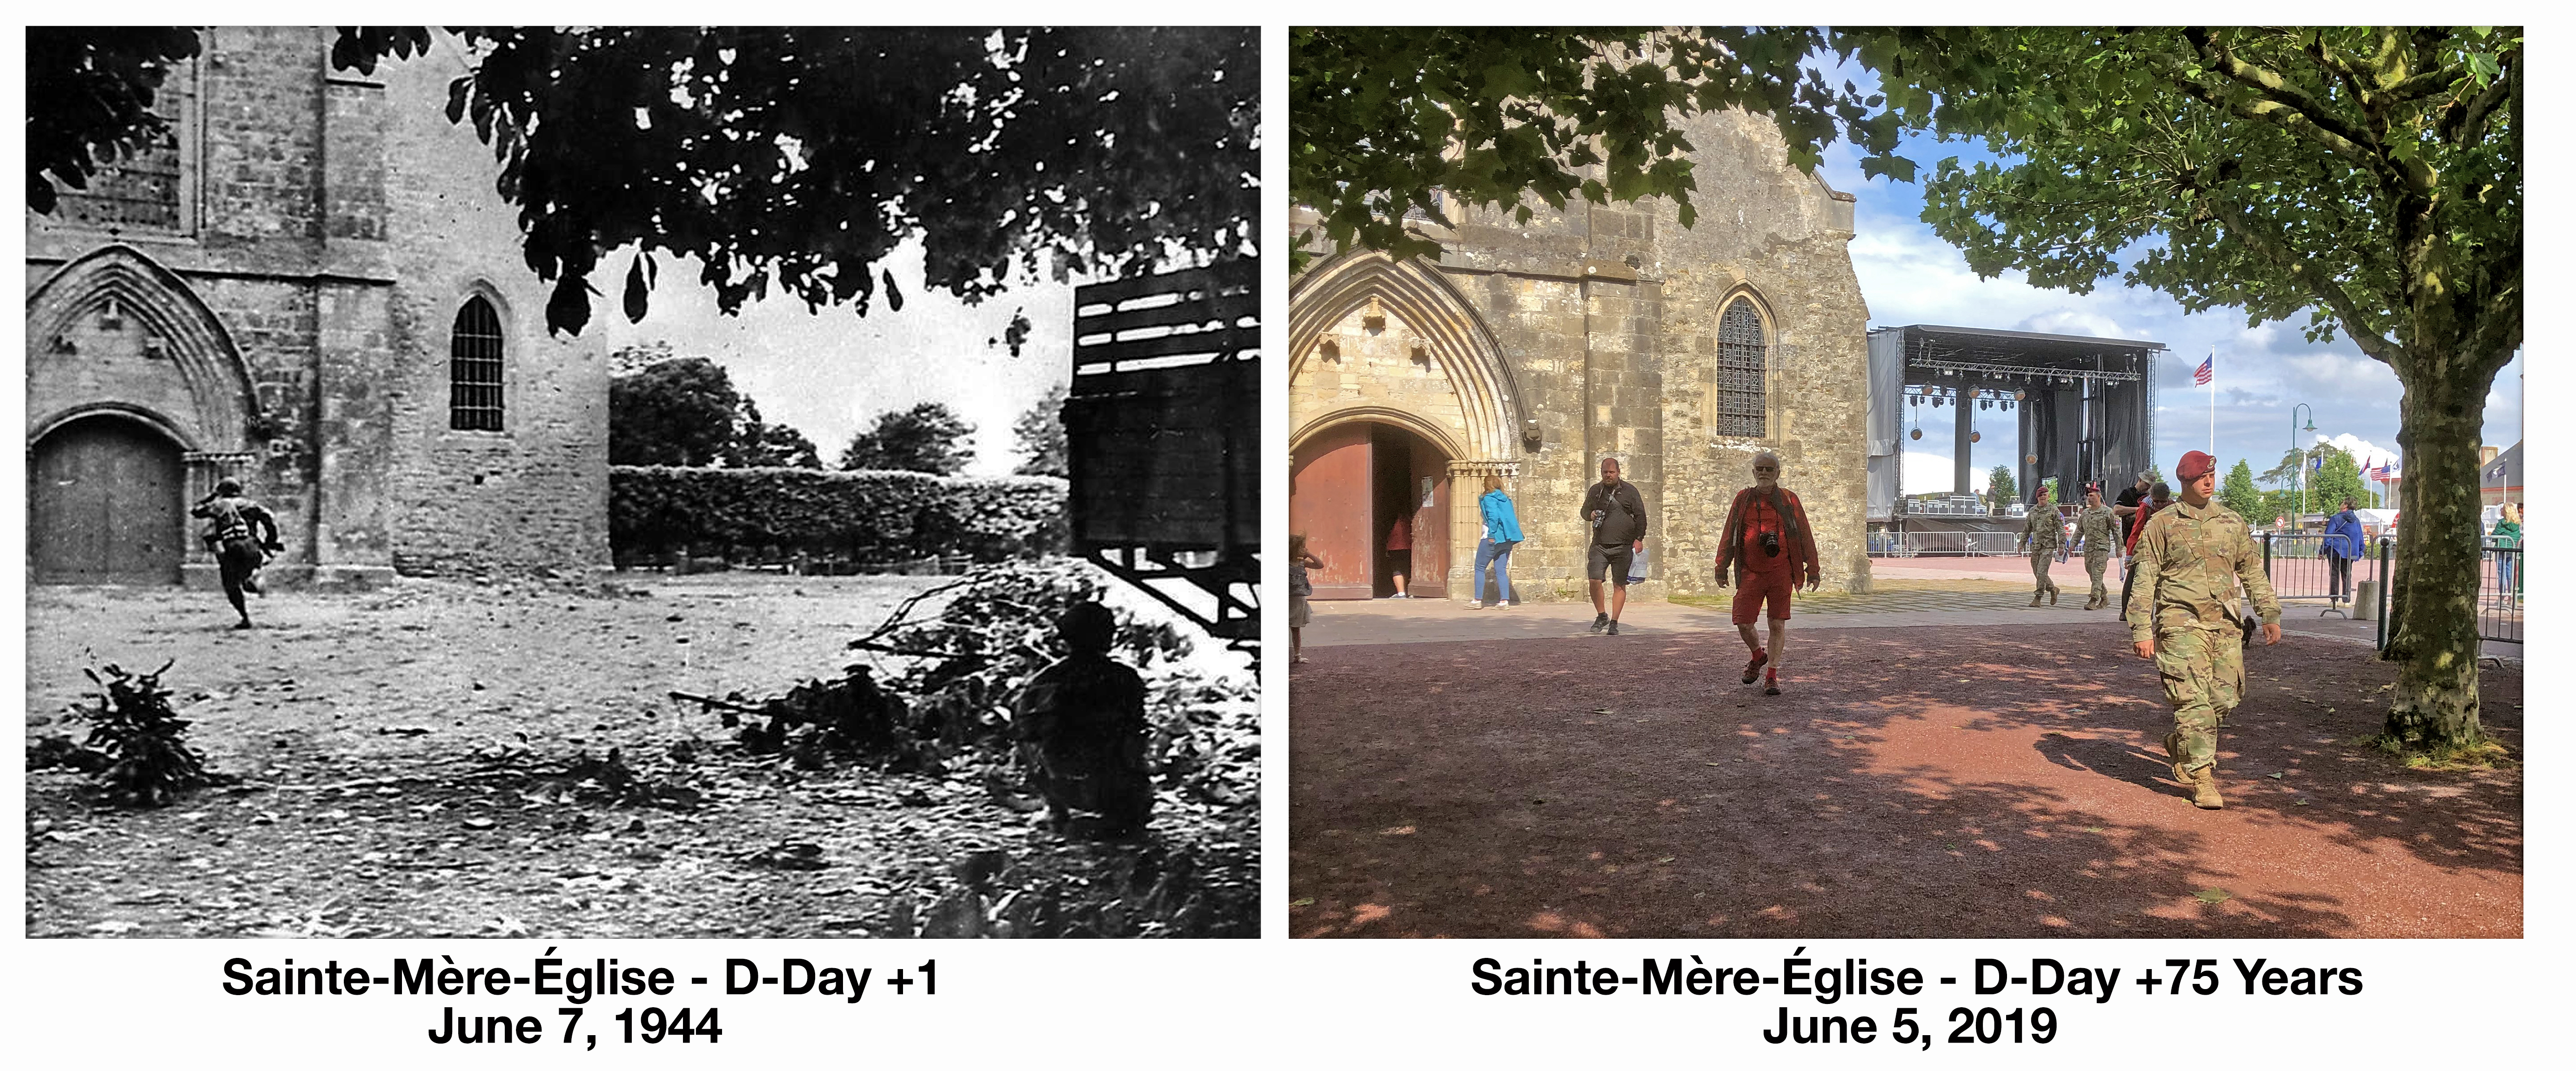 Saint Mere Eglise D-Day +1 before and after then and now Normandy France World War 2